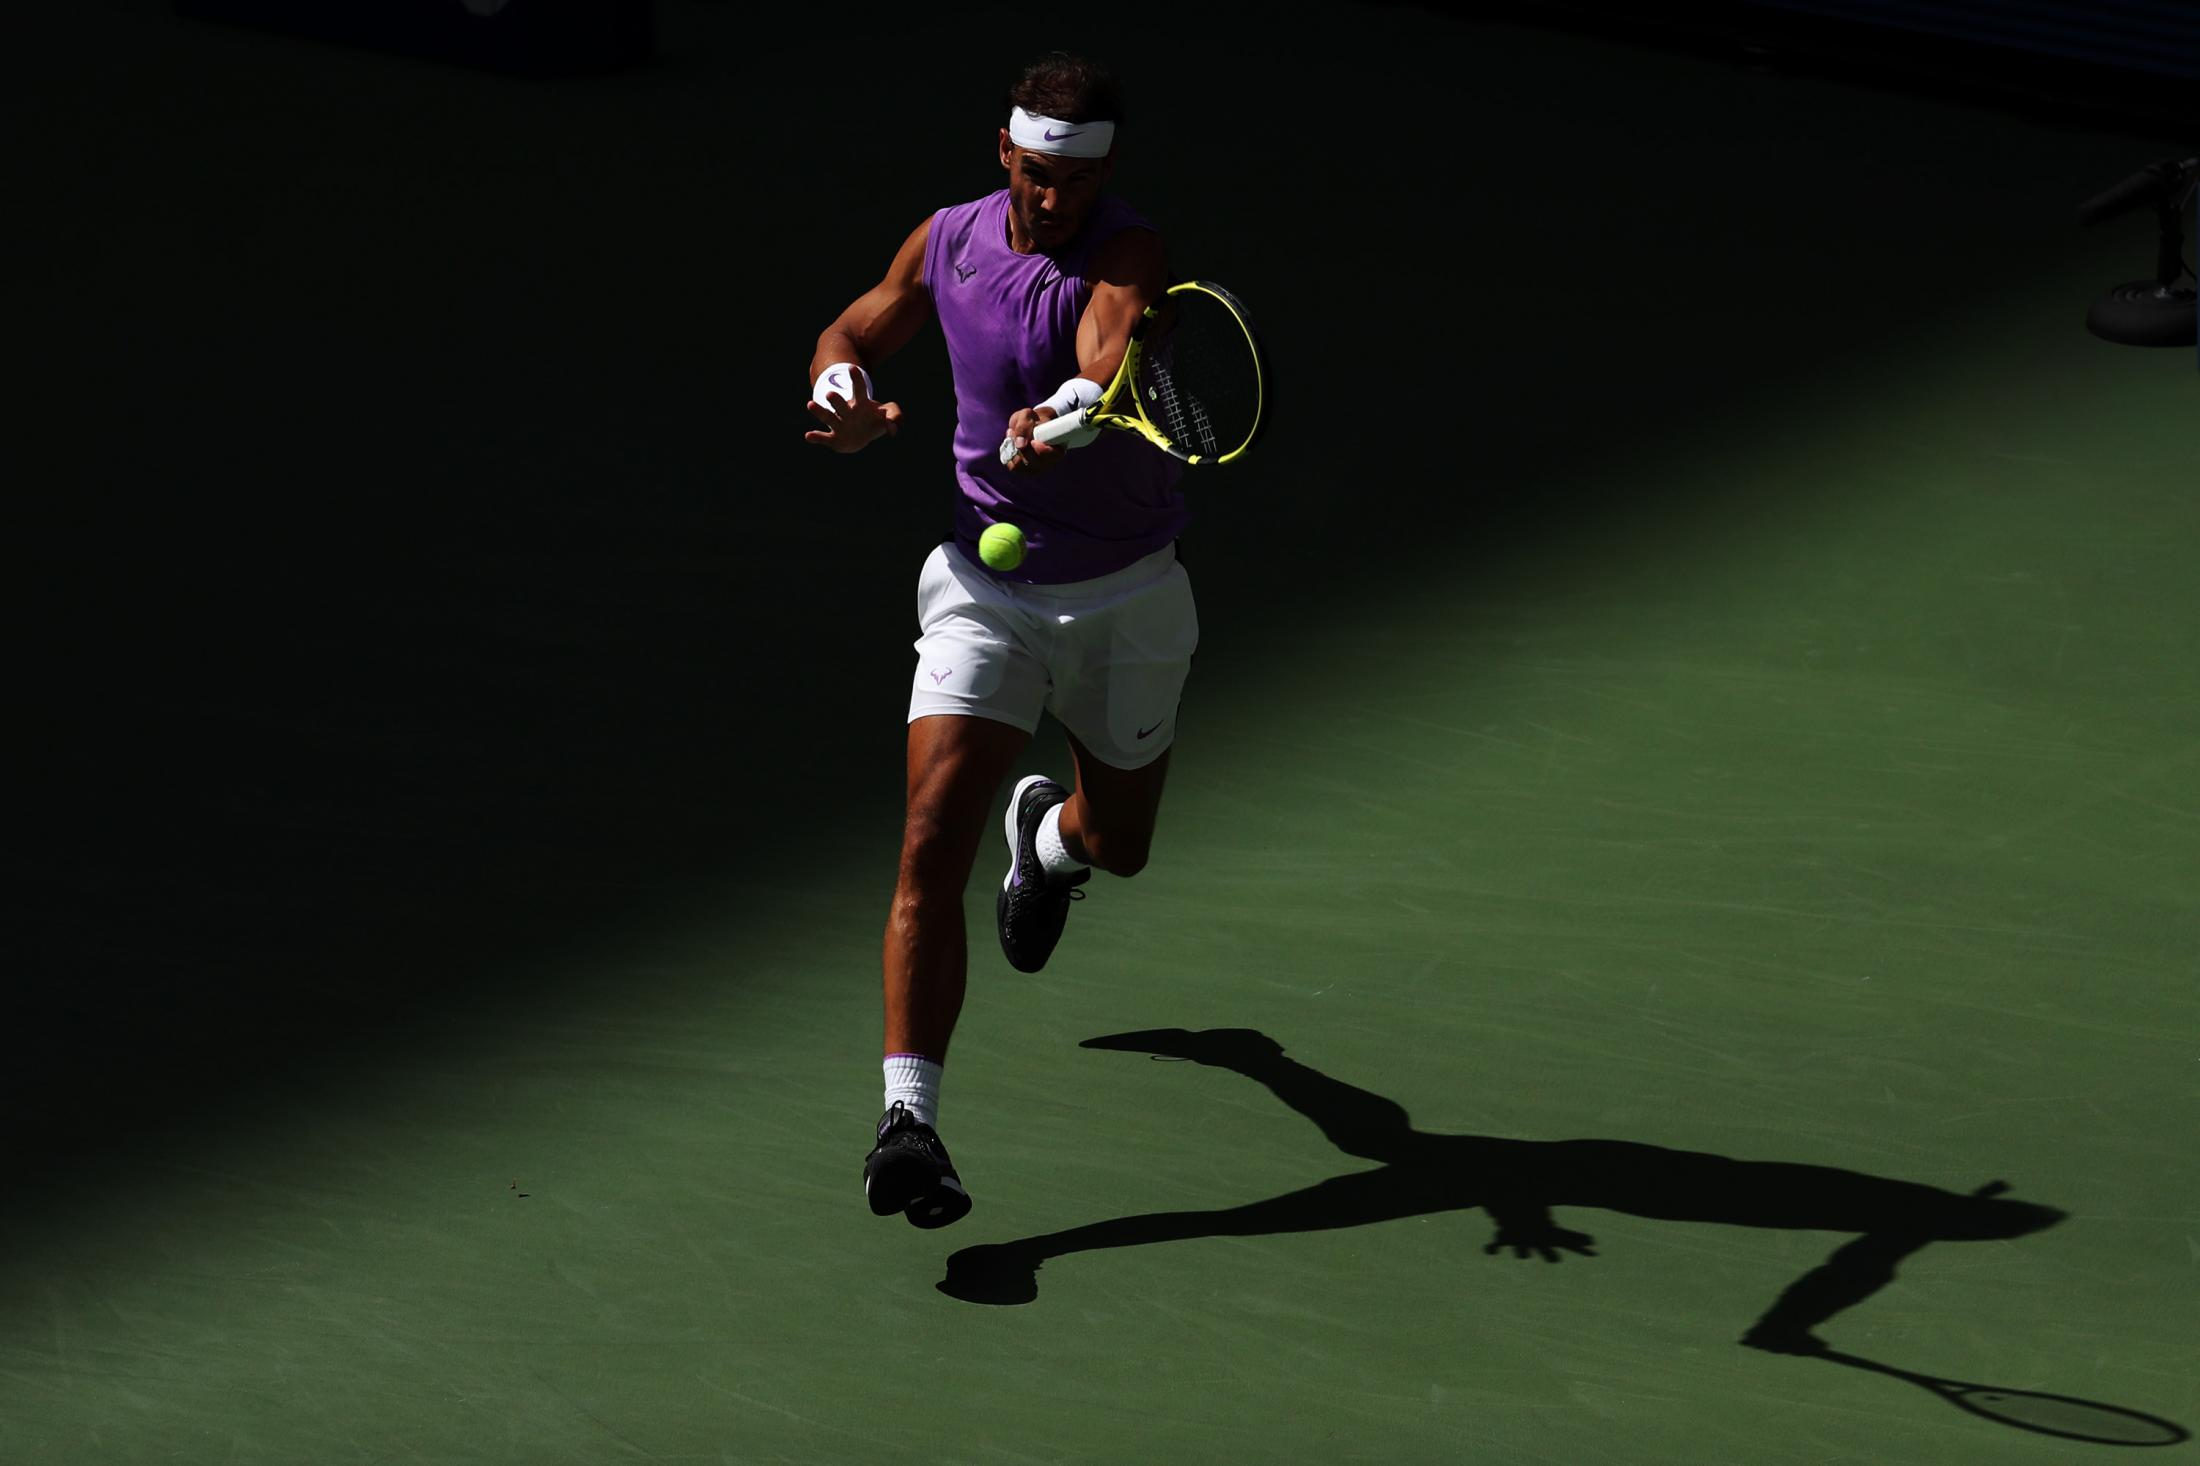 NEW YORK, NEW YORK - AUGUST 31: Rafael Nadal of Spain returns a shot during his Men's Singles third round match against Hyeon Chung of South Korea on day six of the 2019 US Open at the USTA Billie Jean King National Tennis Center on August 31, 2019 in Queens borough of New York City. (Photo by Katharine Lotze/Getty Images)